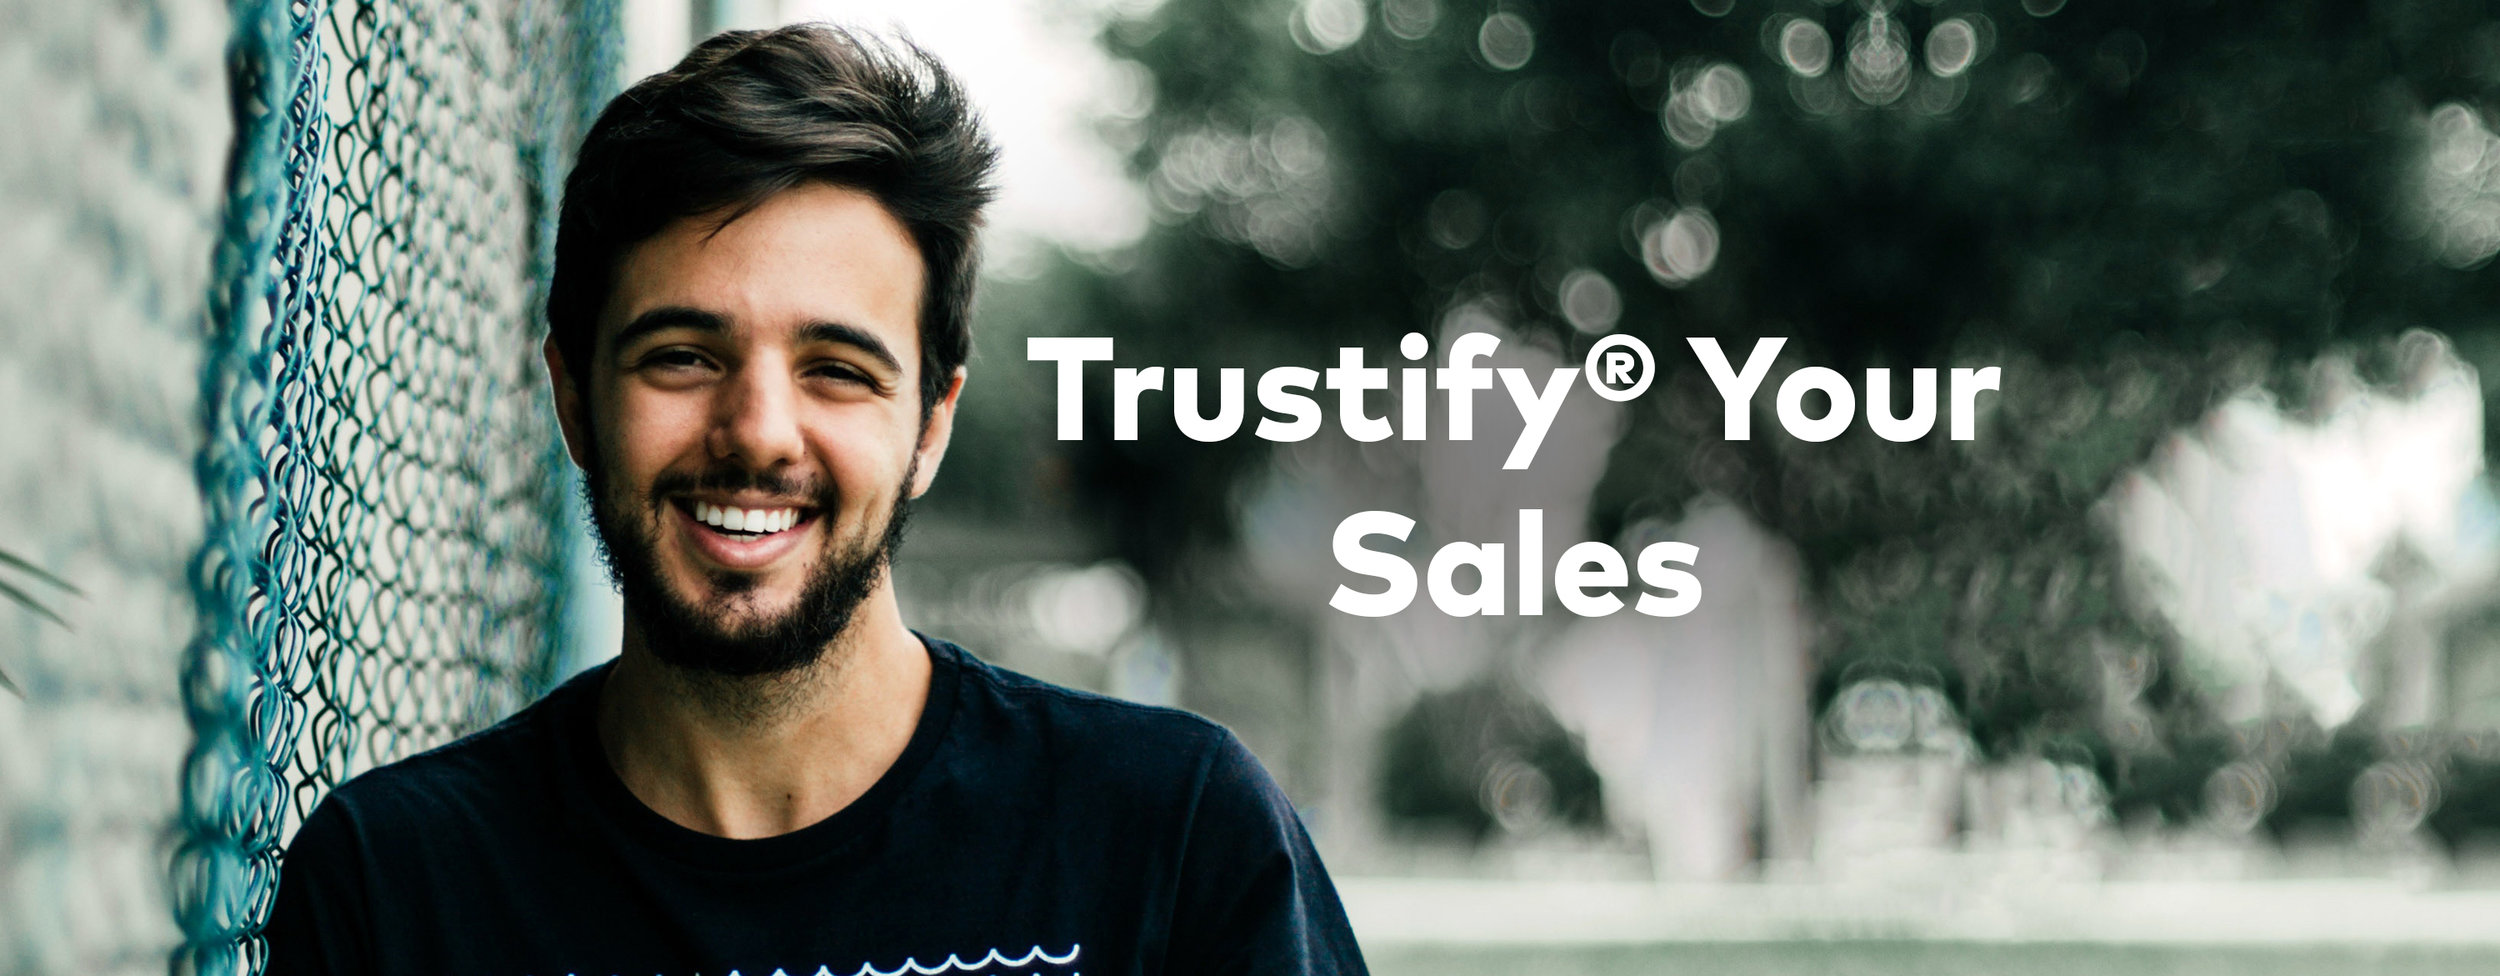 Mext_Consulting_Firm_Melbourne_Trust_Trustify_Your_Sales_Banner.jpg